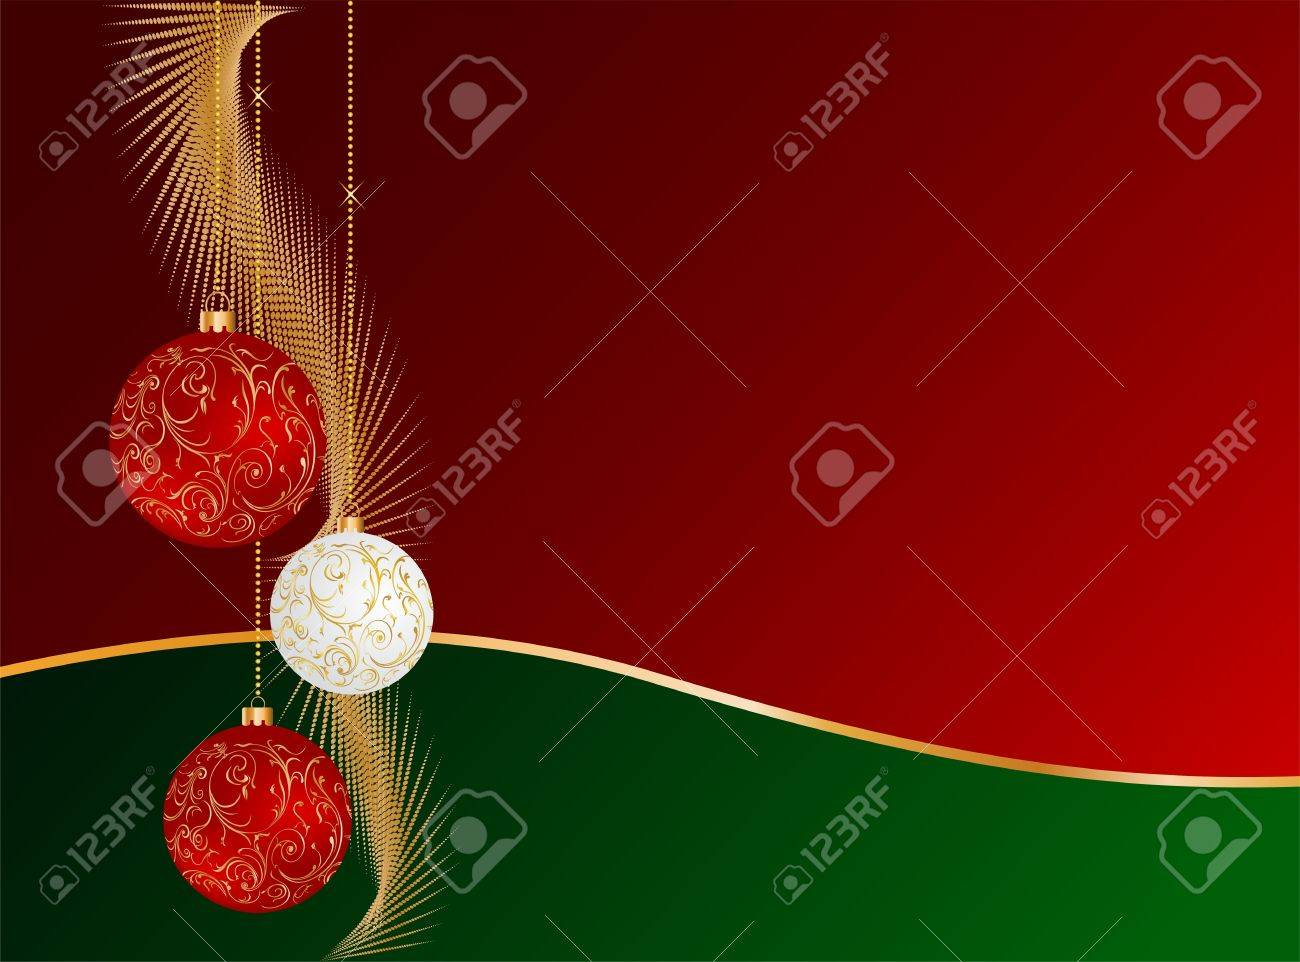 Christmas decorations design Stock Vector - 16449747